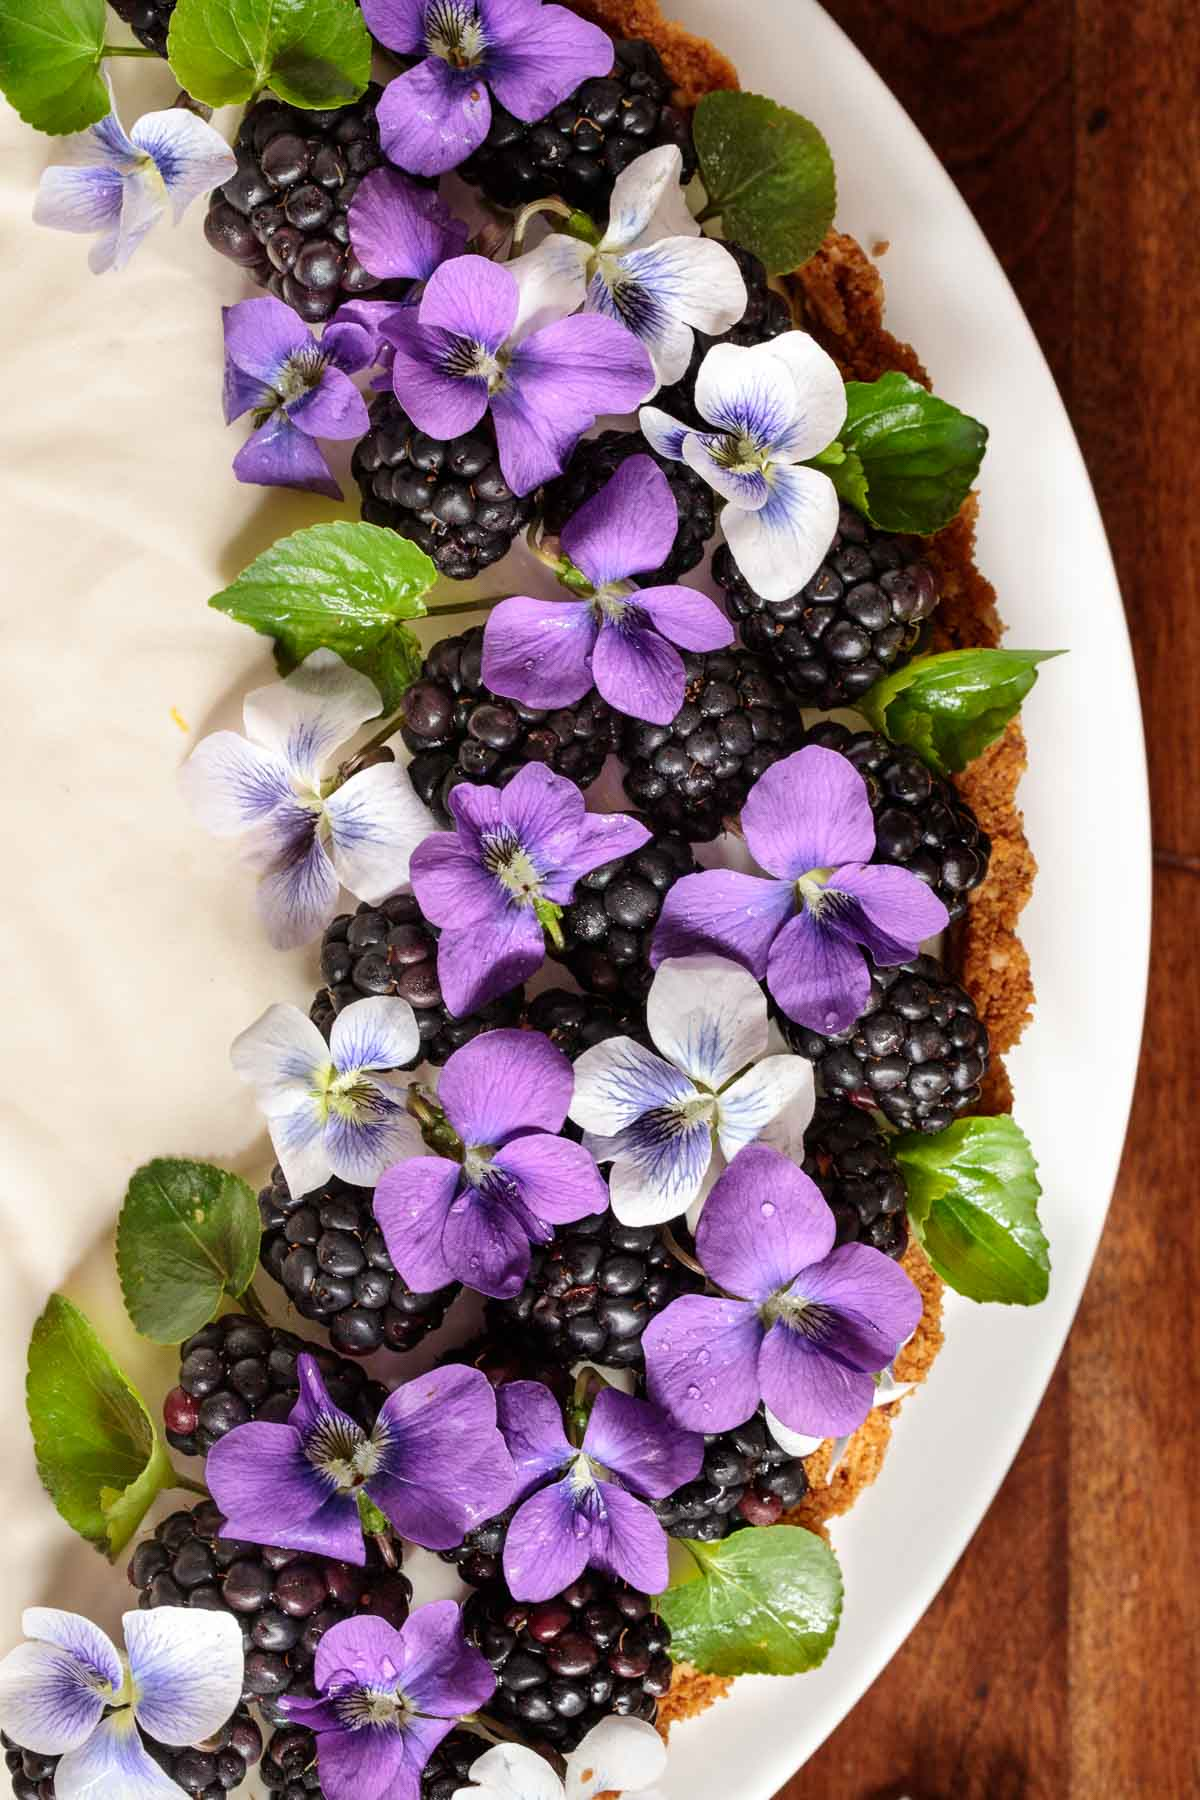 Overhead photo of a Limoncello Lemon Tart decorated with wild violet flowers, leaves and blackberries.